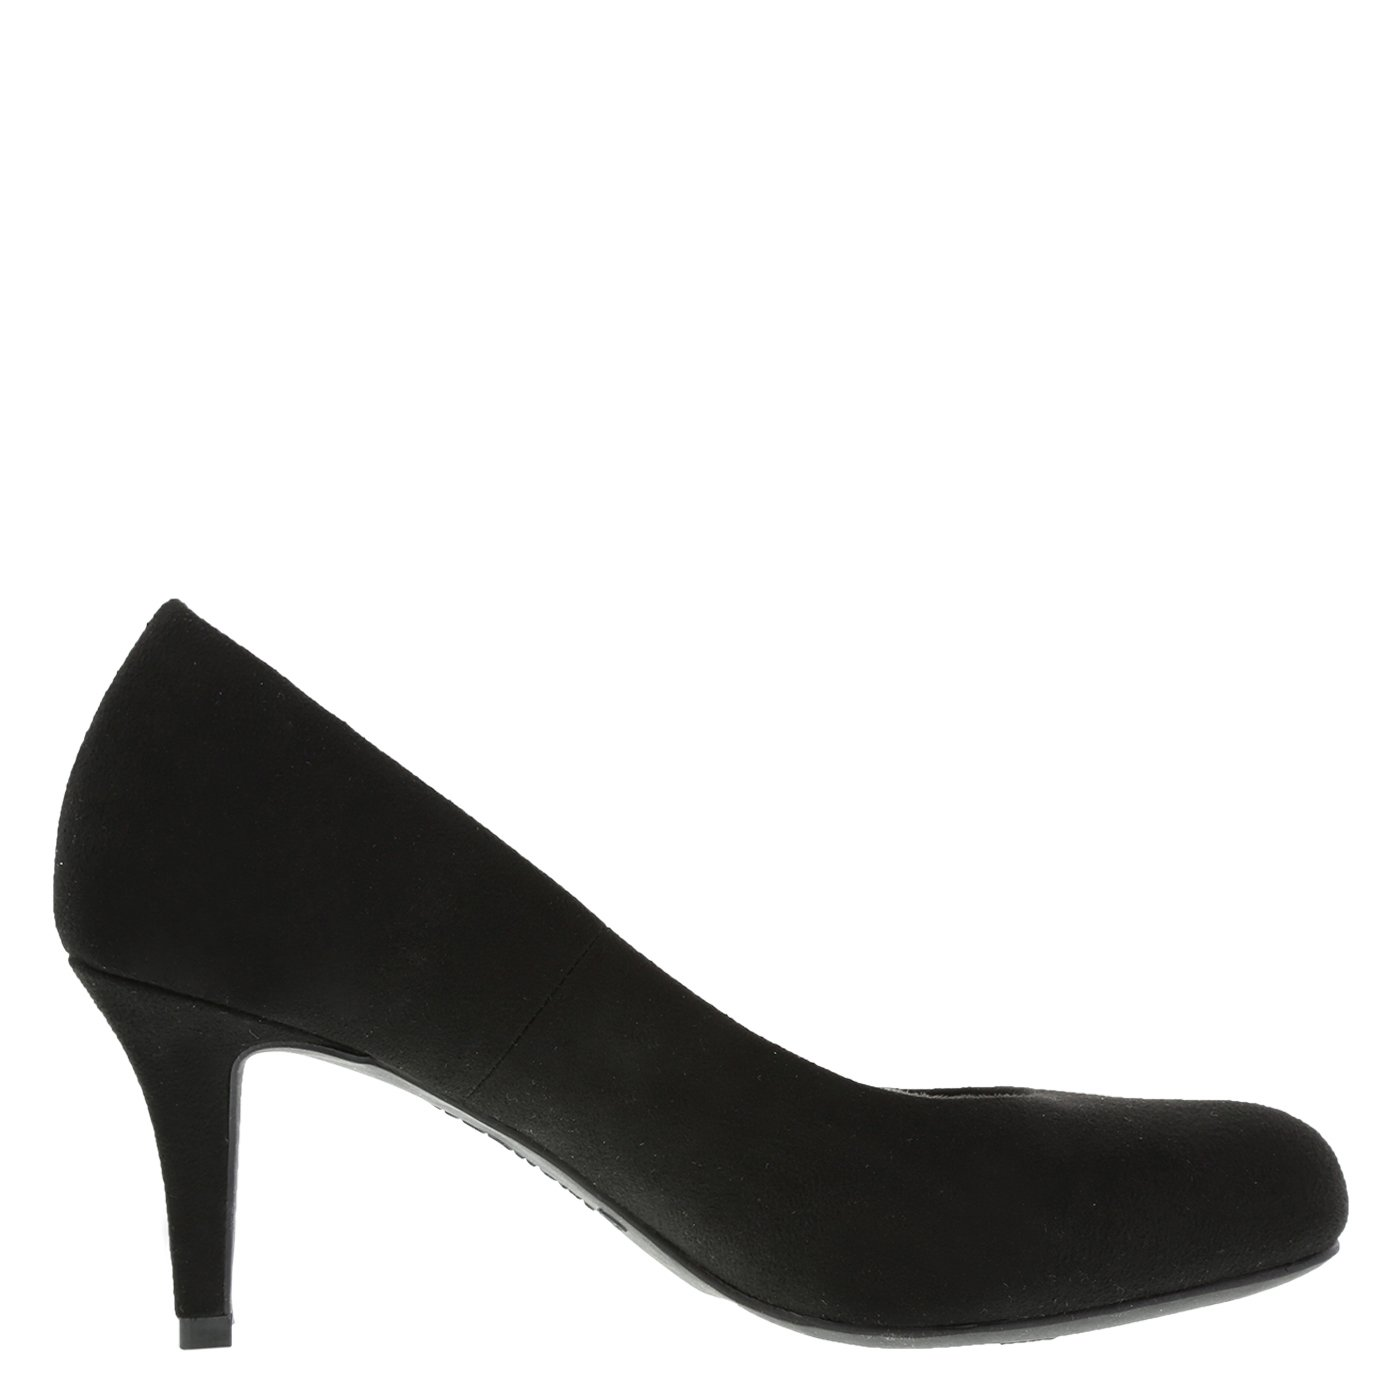 Comfort Plus by Predictions Womens Black Suede Womens Karmen Pump 13 Wide: Amazon.co.uk: Shoes & Bags